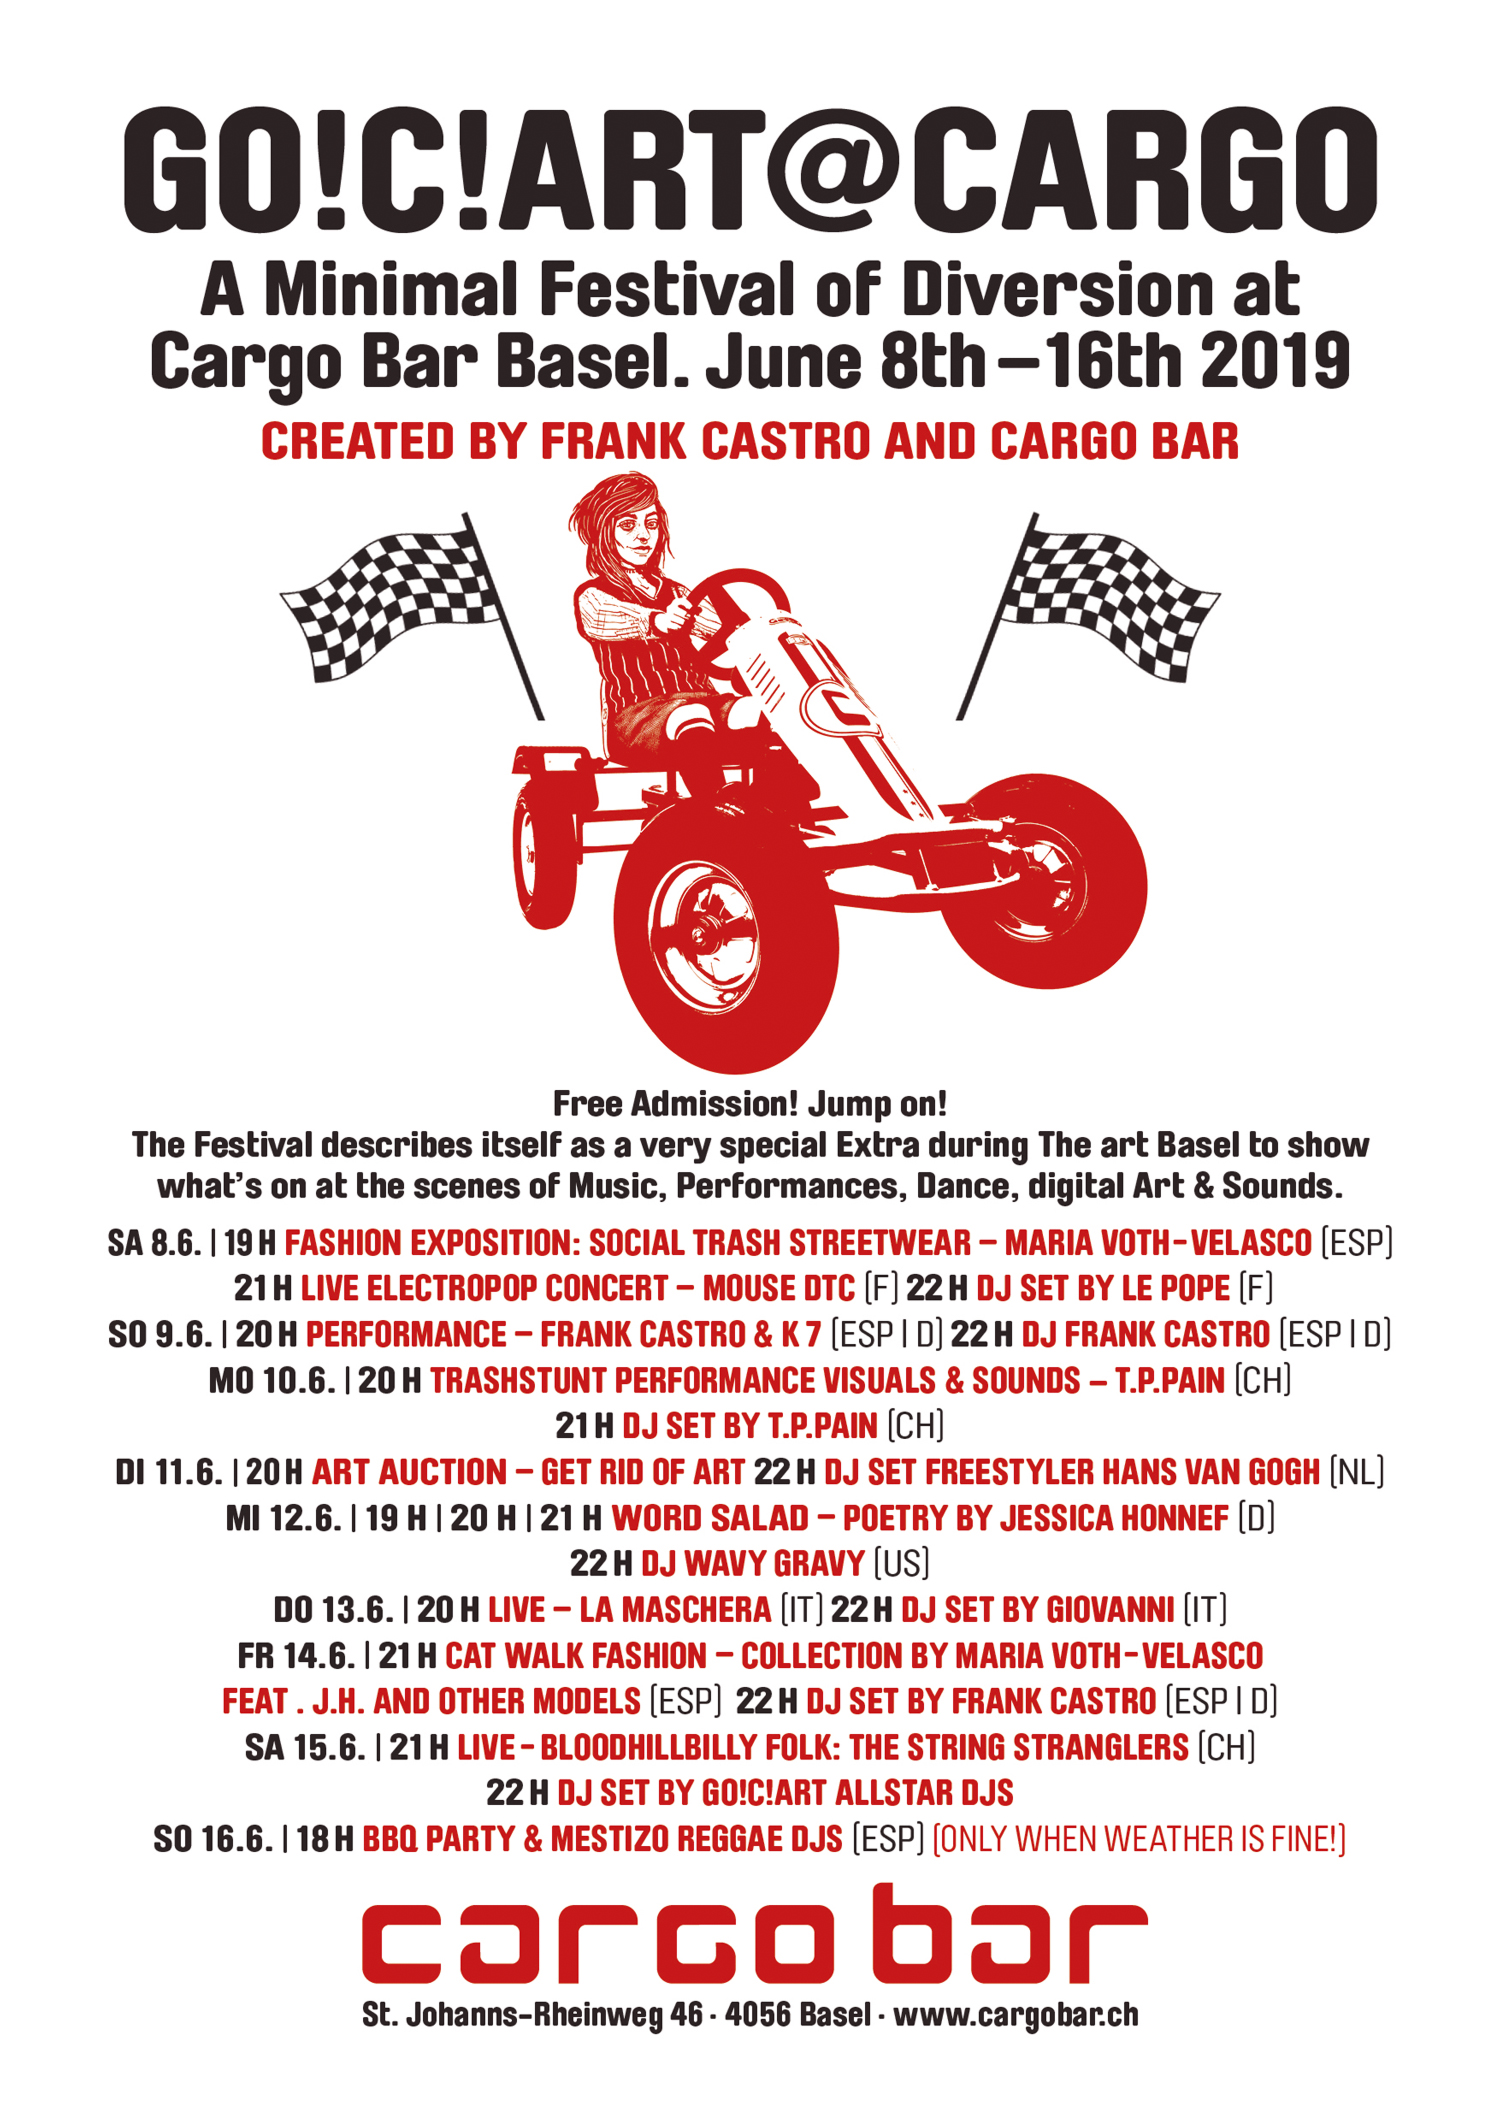 /dms1500  /cargobar-event-pictures/untitled6/untitled20/RZ_Plakat_Cargo_GoCart_2019_WEB.jpg